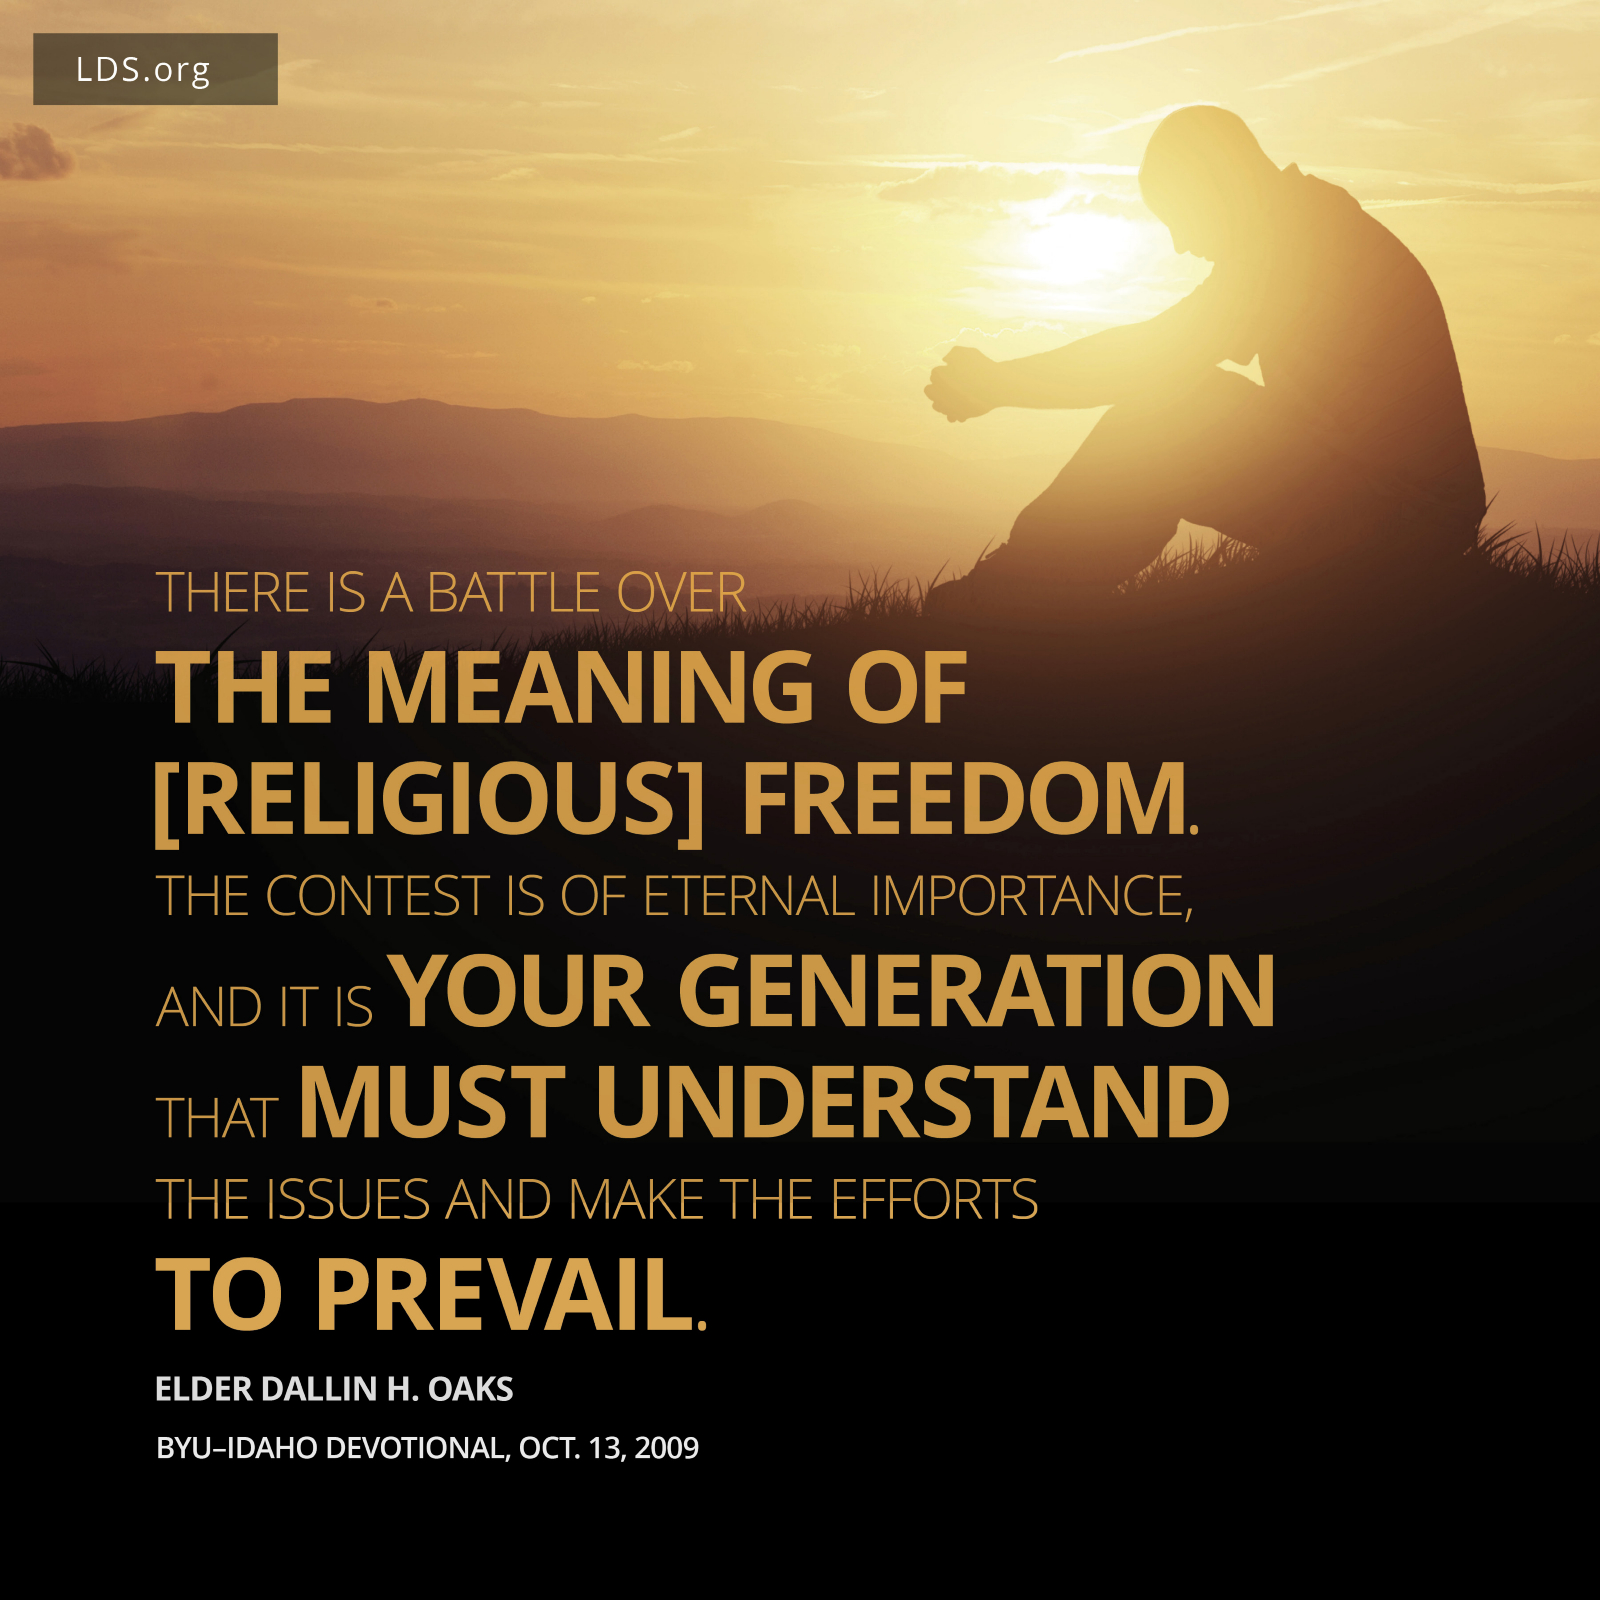 understanding the freedom of religion Bible verses on freedom june 28, 2016 by hariette petersen  i pray you find some verses here to help you understand the freedom god offers you.